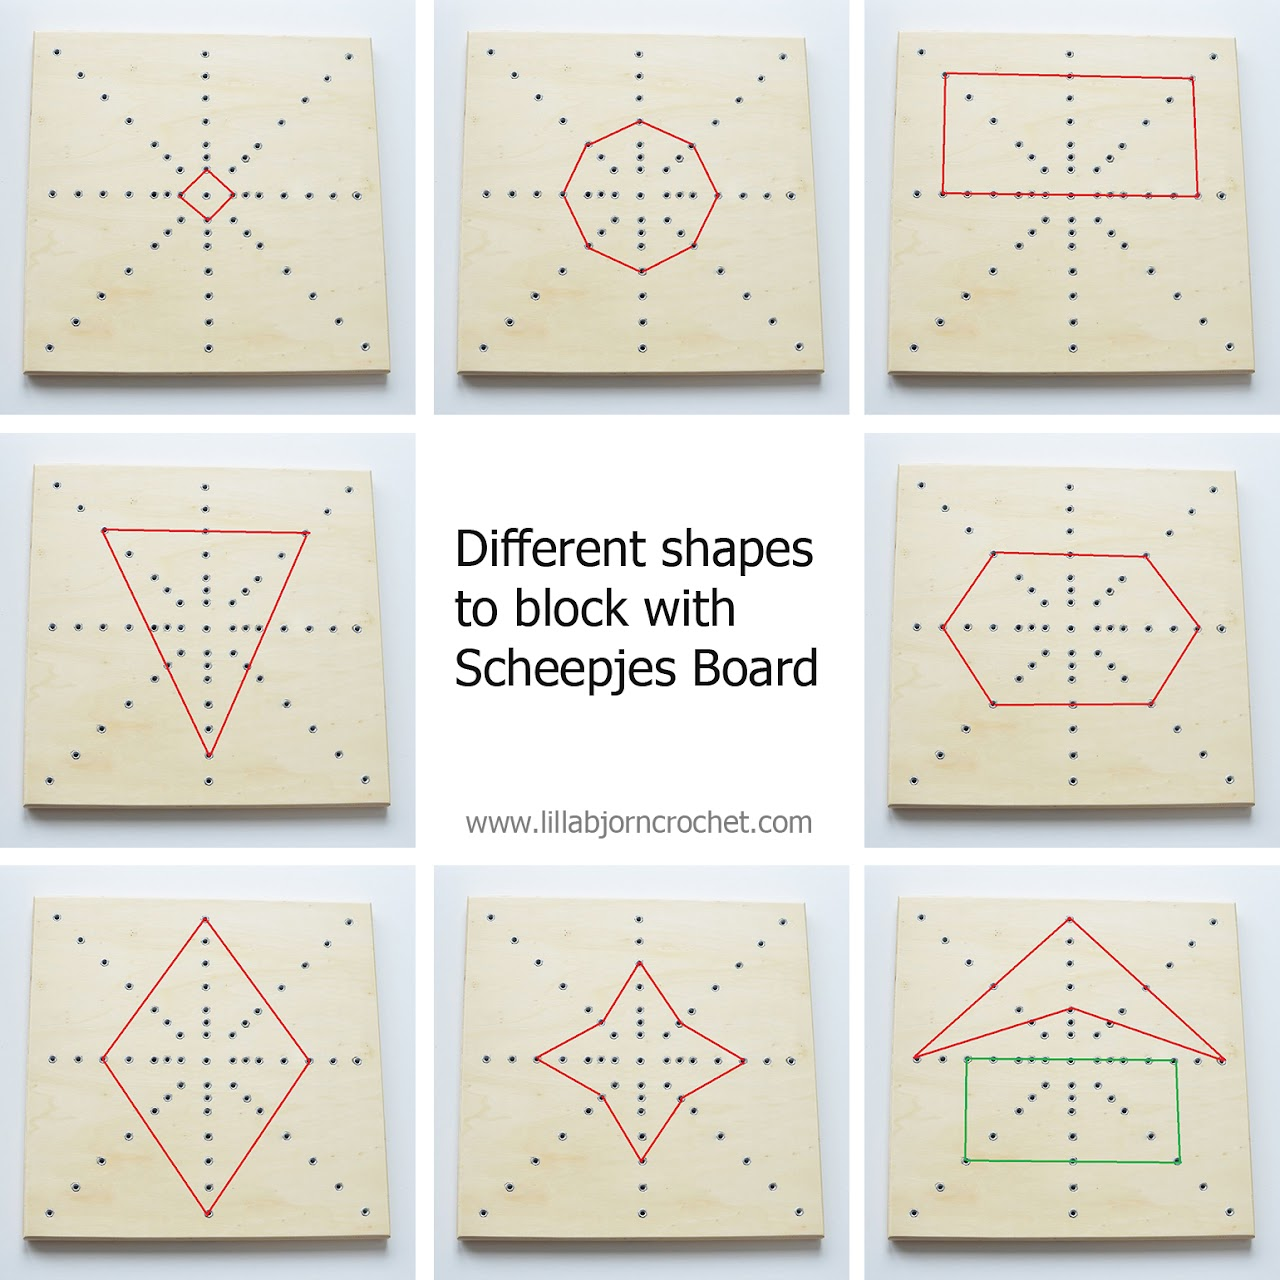 Different shapes to block with Scheepjes board